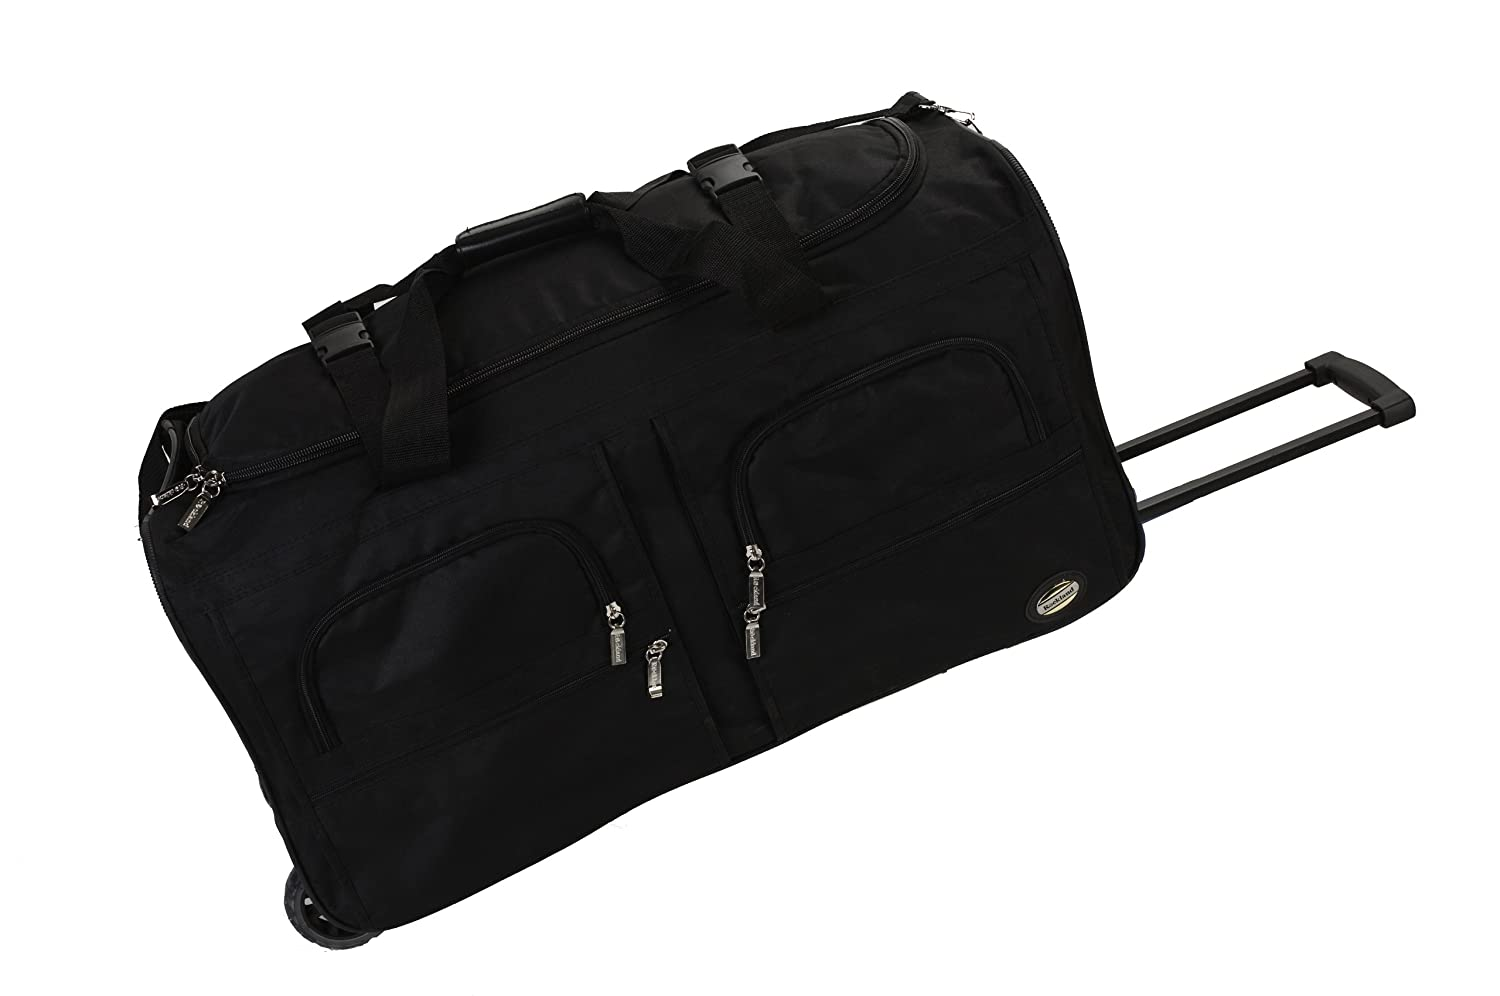 Rockland Luggage 30 Inch Rolling Duffle/ Bag Medium Black